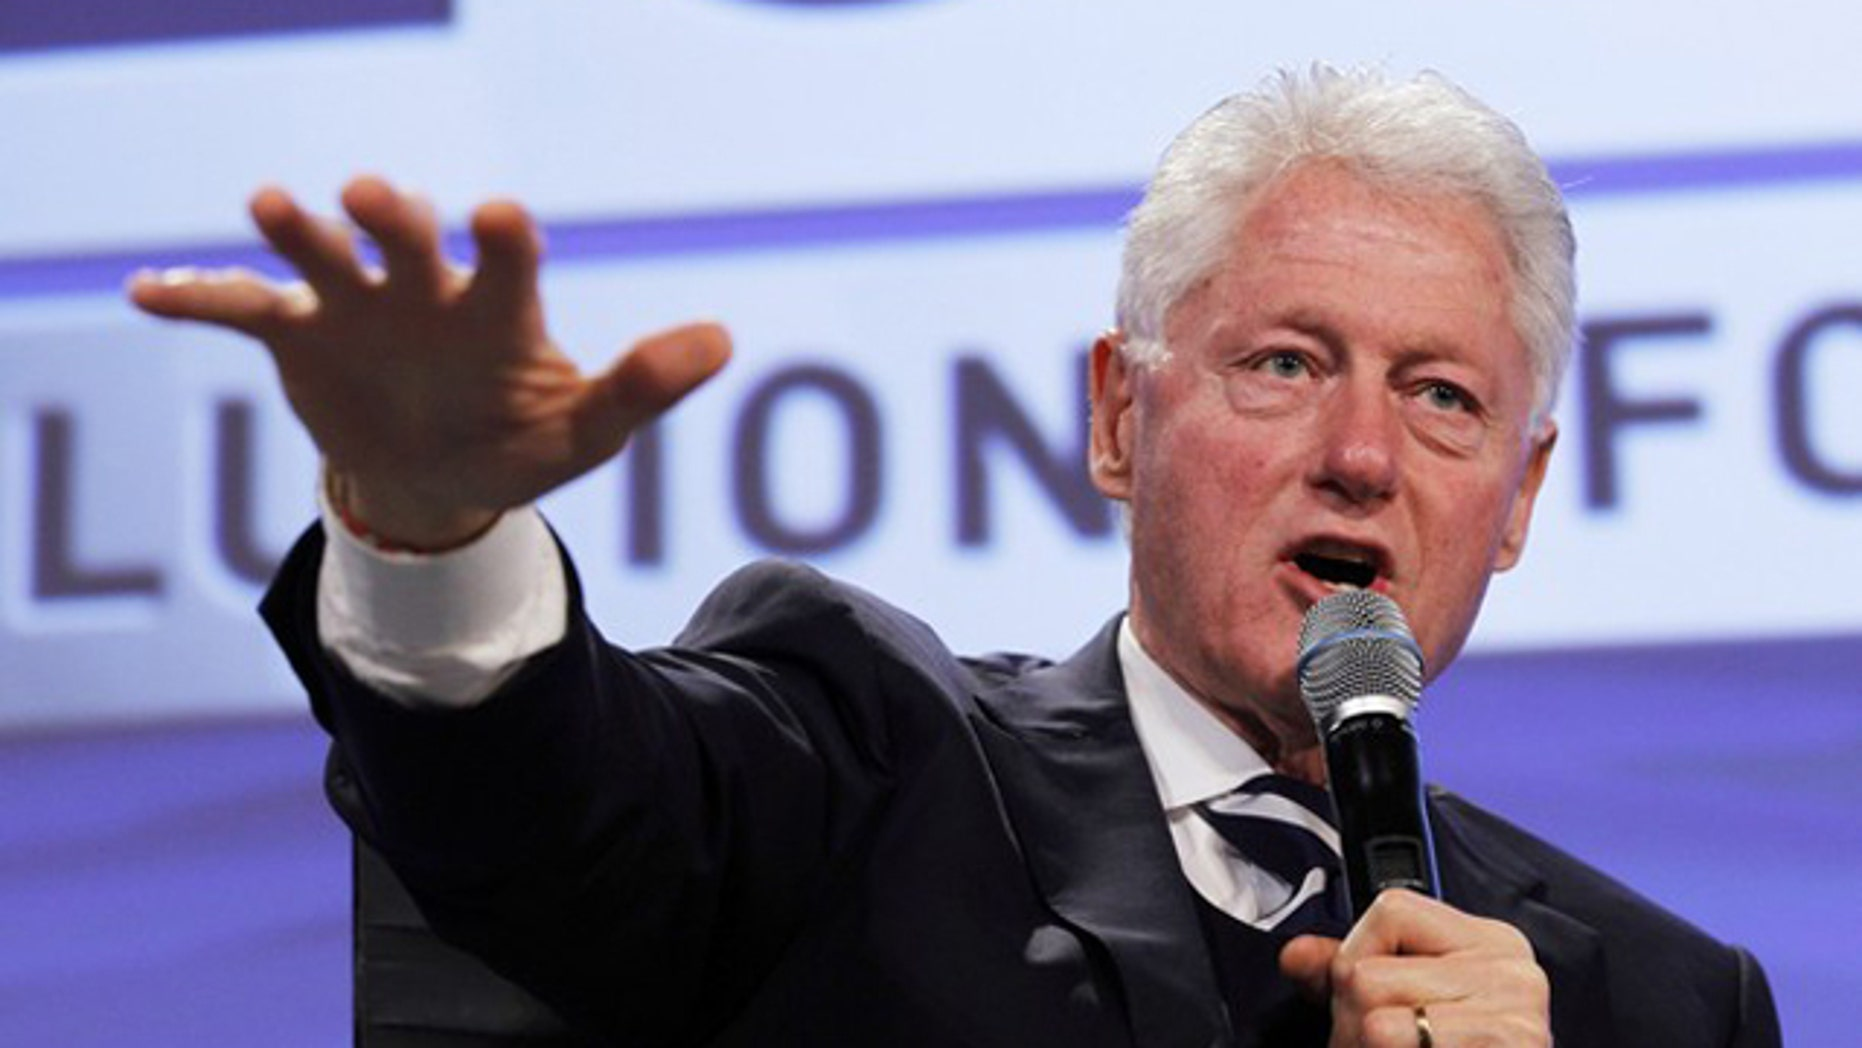 Former President Bill Clinton speaks at the 2011 Fiscal Summit on Solutions for America's future in Washington May 25.